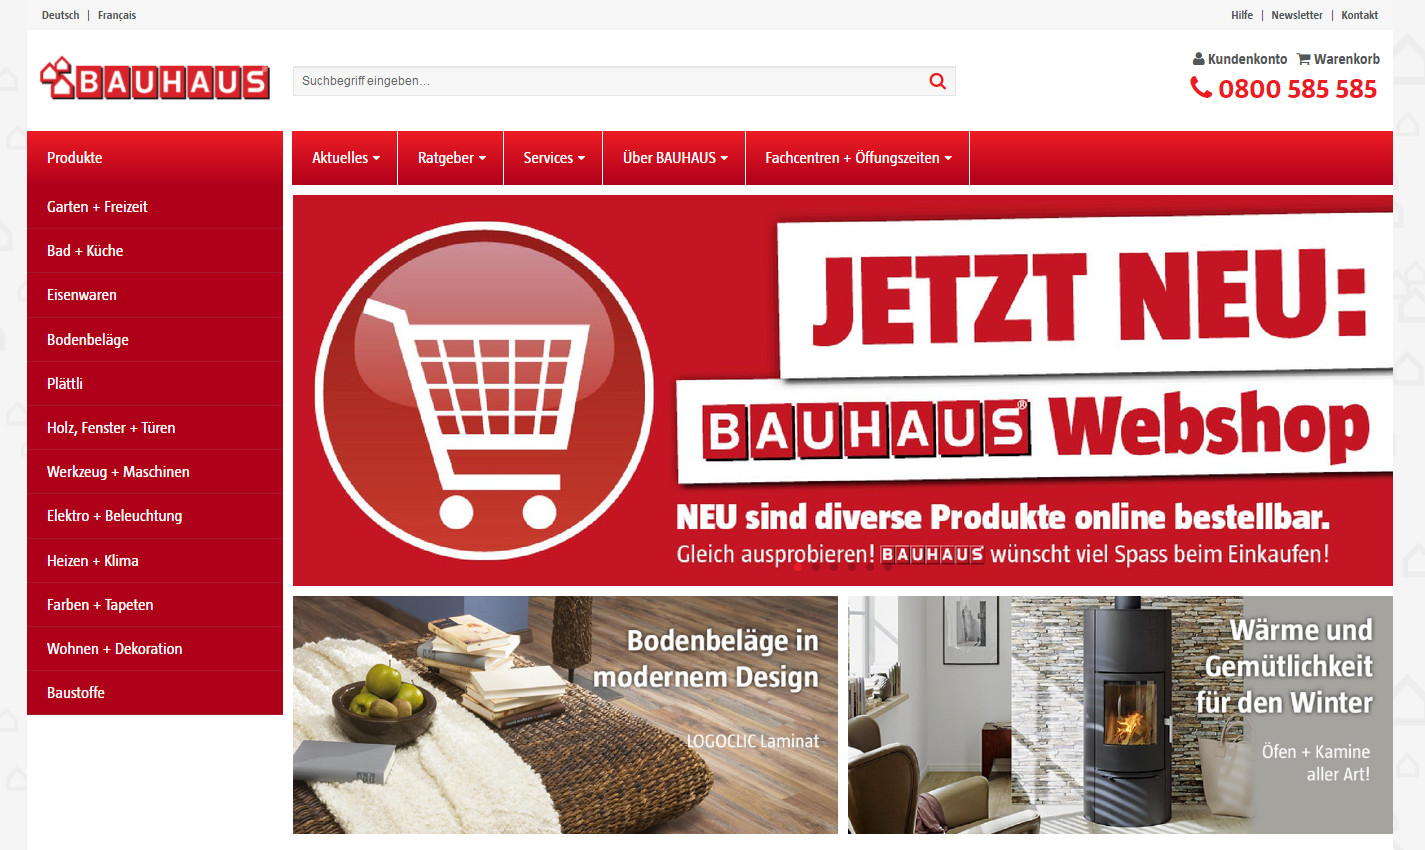 baumarkt rallye bauhaus startet neuen onlineshop in der. Black Bedroom Furniture Sets. Home Design Ideas